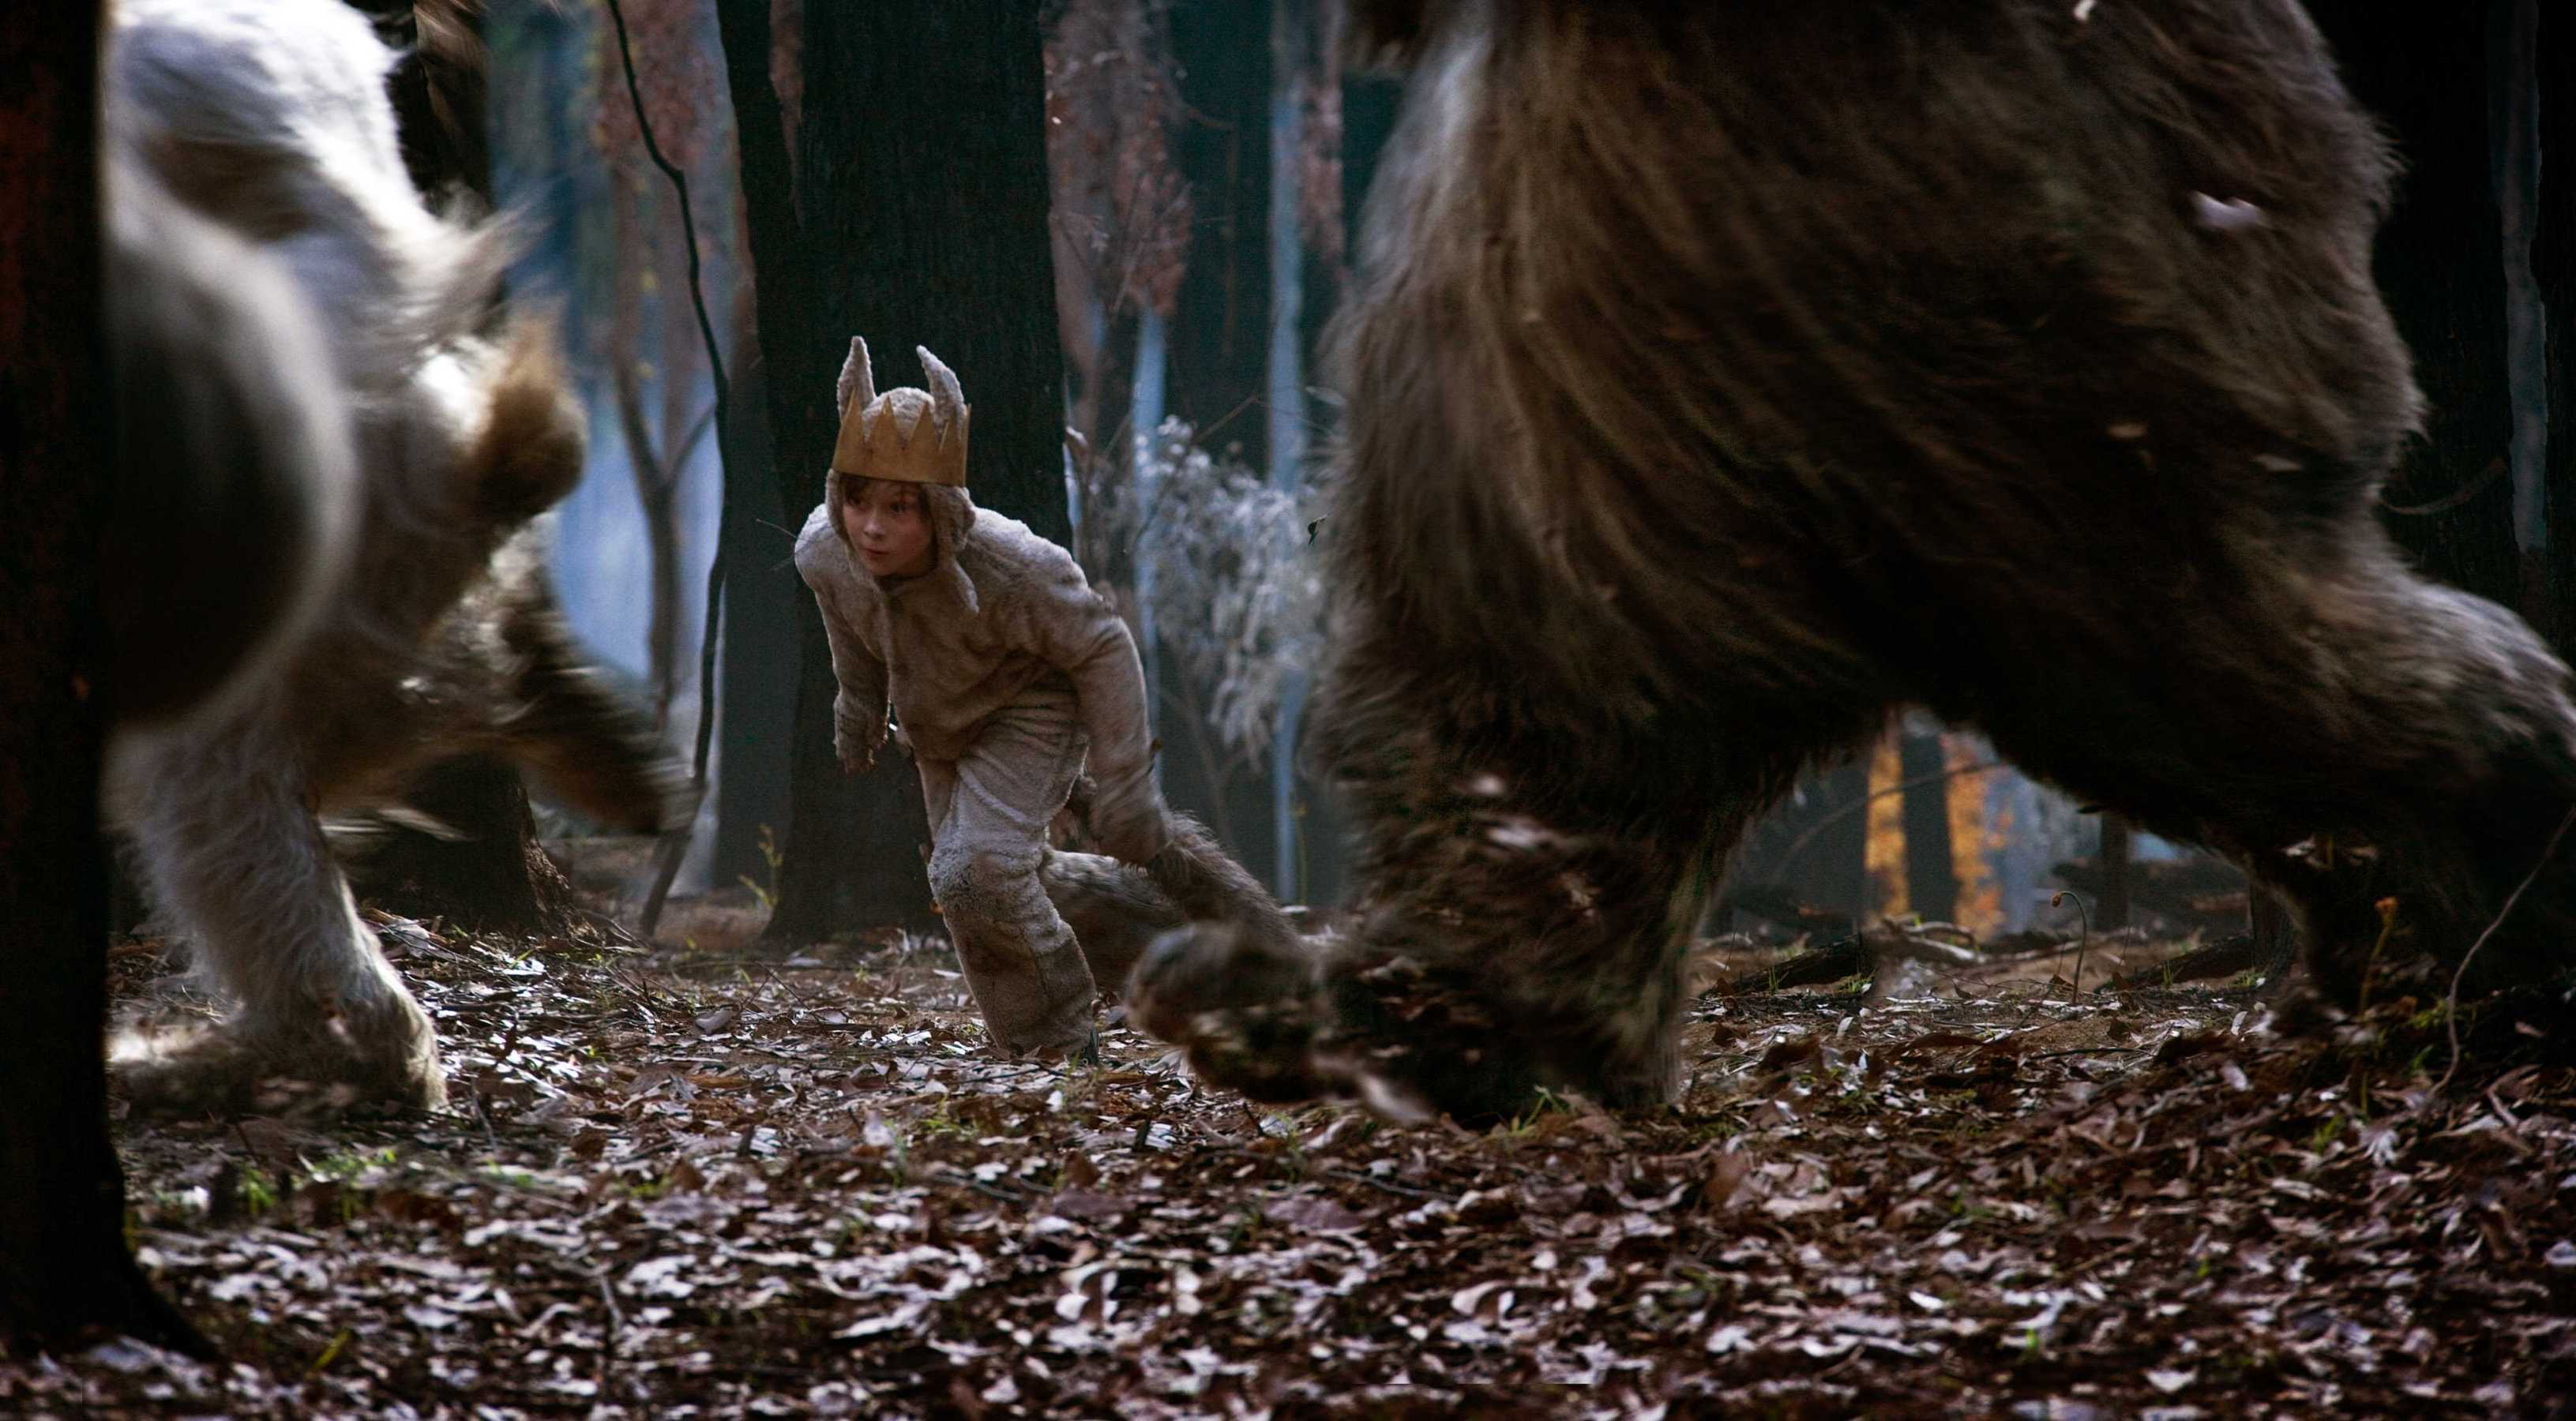 where The Wild things HD Wallpaper